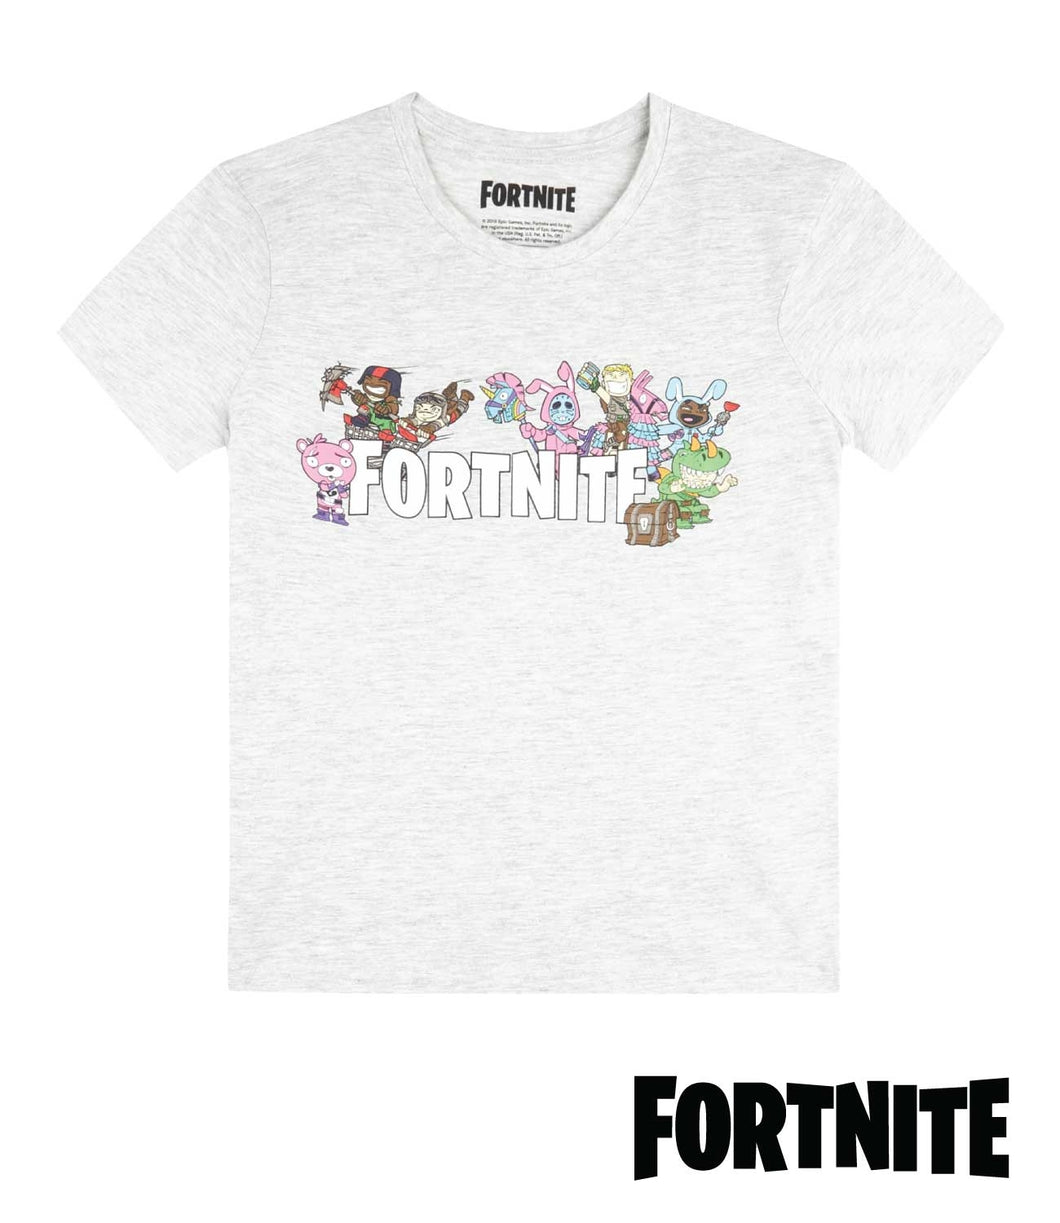 Fortnite Logo With Heroes T-Shirt for KIDS